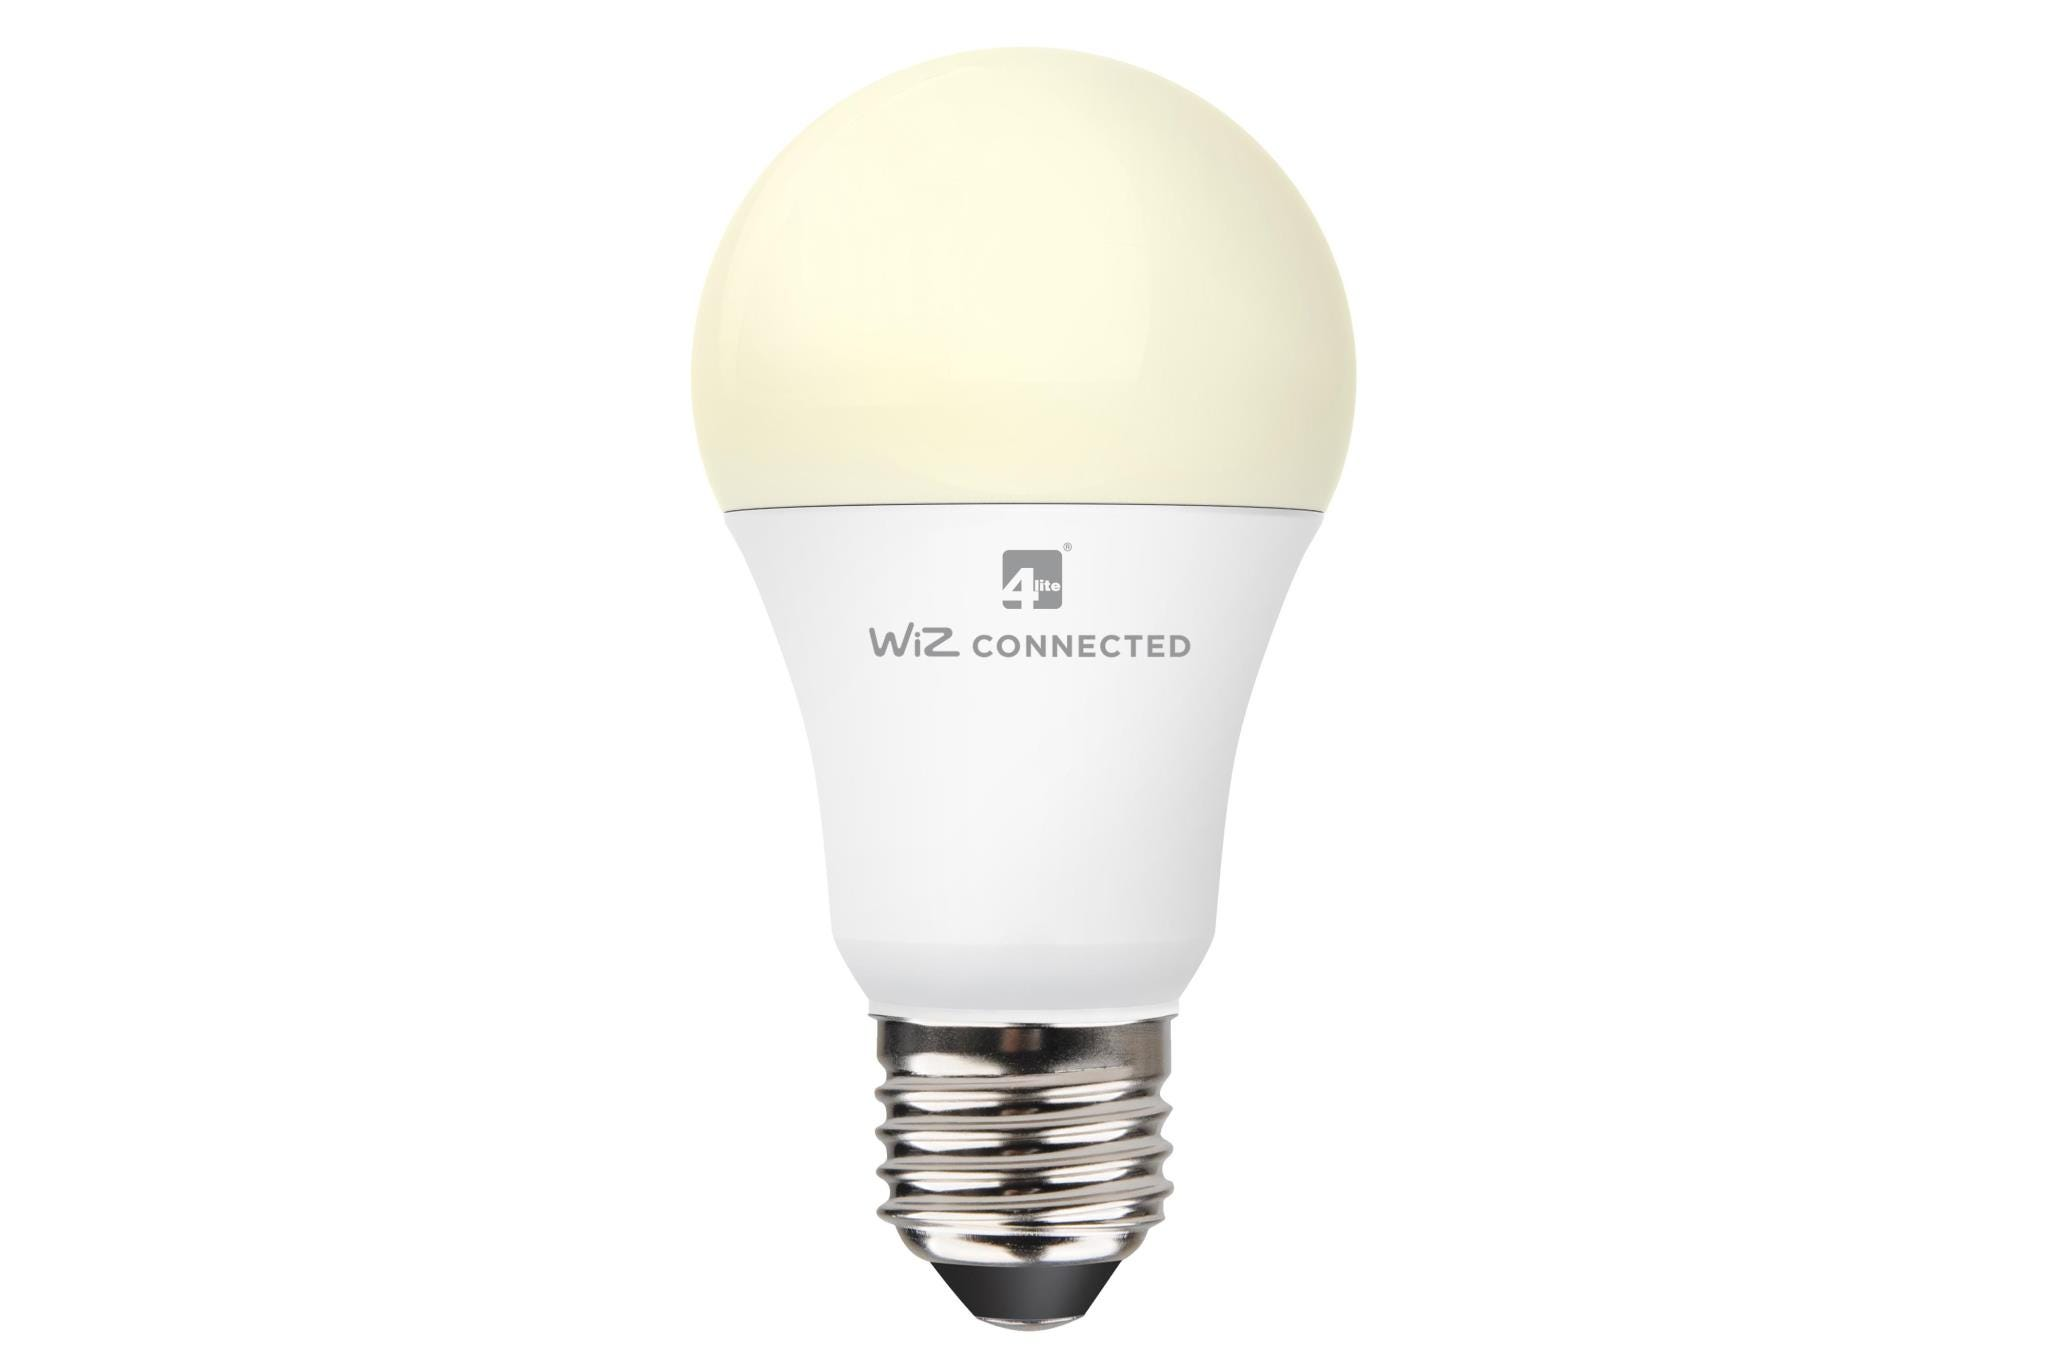 4lite WiZ Connected Classic A60 LED Smart Bulb White Dimmable WiFi E27 Screw